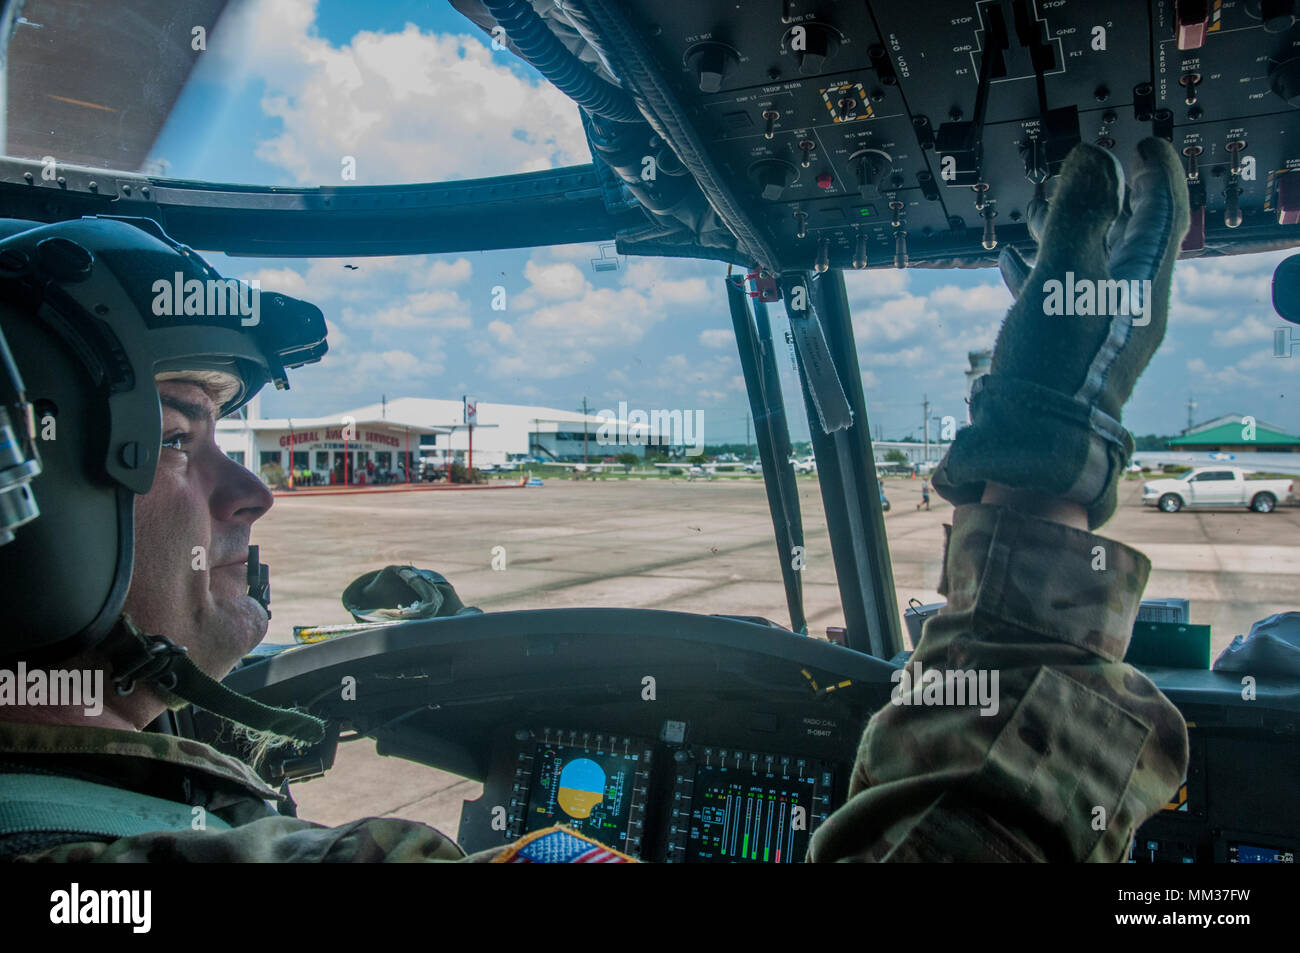 Army Reserve aviation Chief Warrant Officer 3 Jeremy Collins, Bravo Company 7th General Support Aviation Battalion, 158th Aviation Regiment, of Olathe, Ks, starts a CH-47 Chinook helicopter loaded with 15,000 pounds of water for Orange County, Conroe, Texas residents cut off by floods after Hurricane Harvey.  (U.S. Army Reserve photo by Capt. Loyal Auterson) - Stock Image